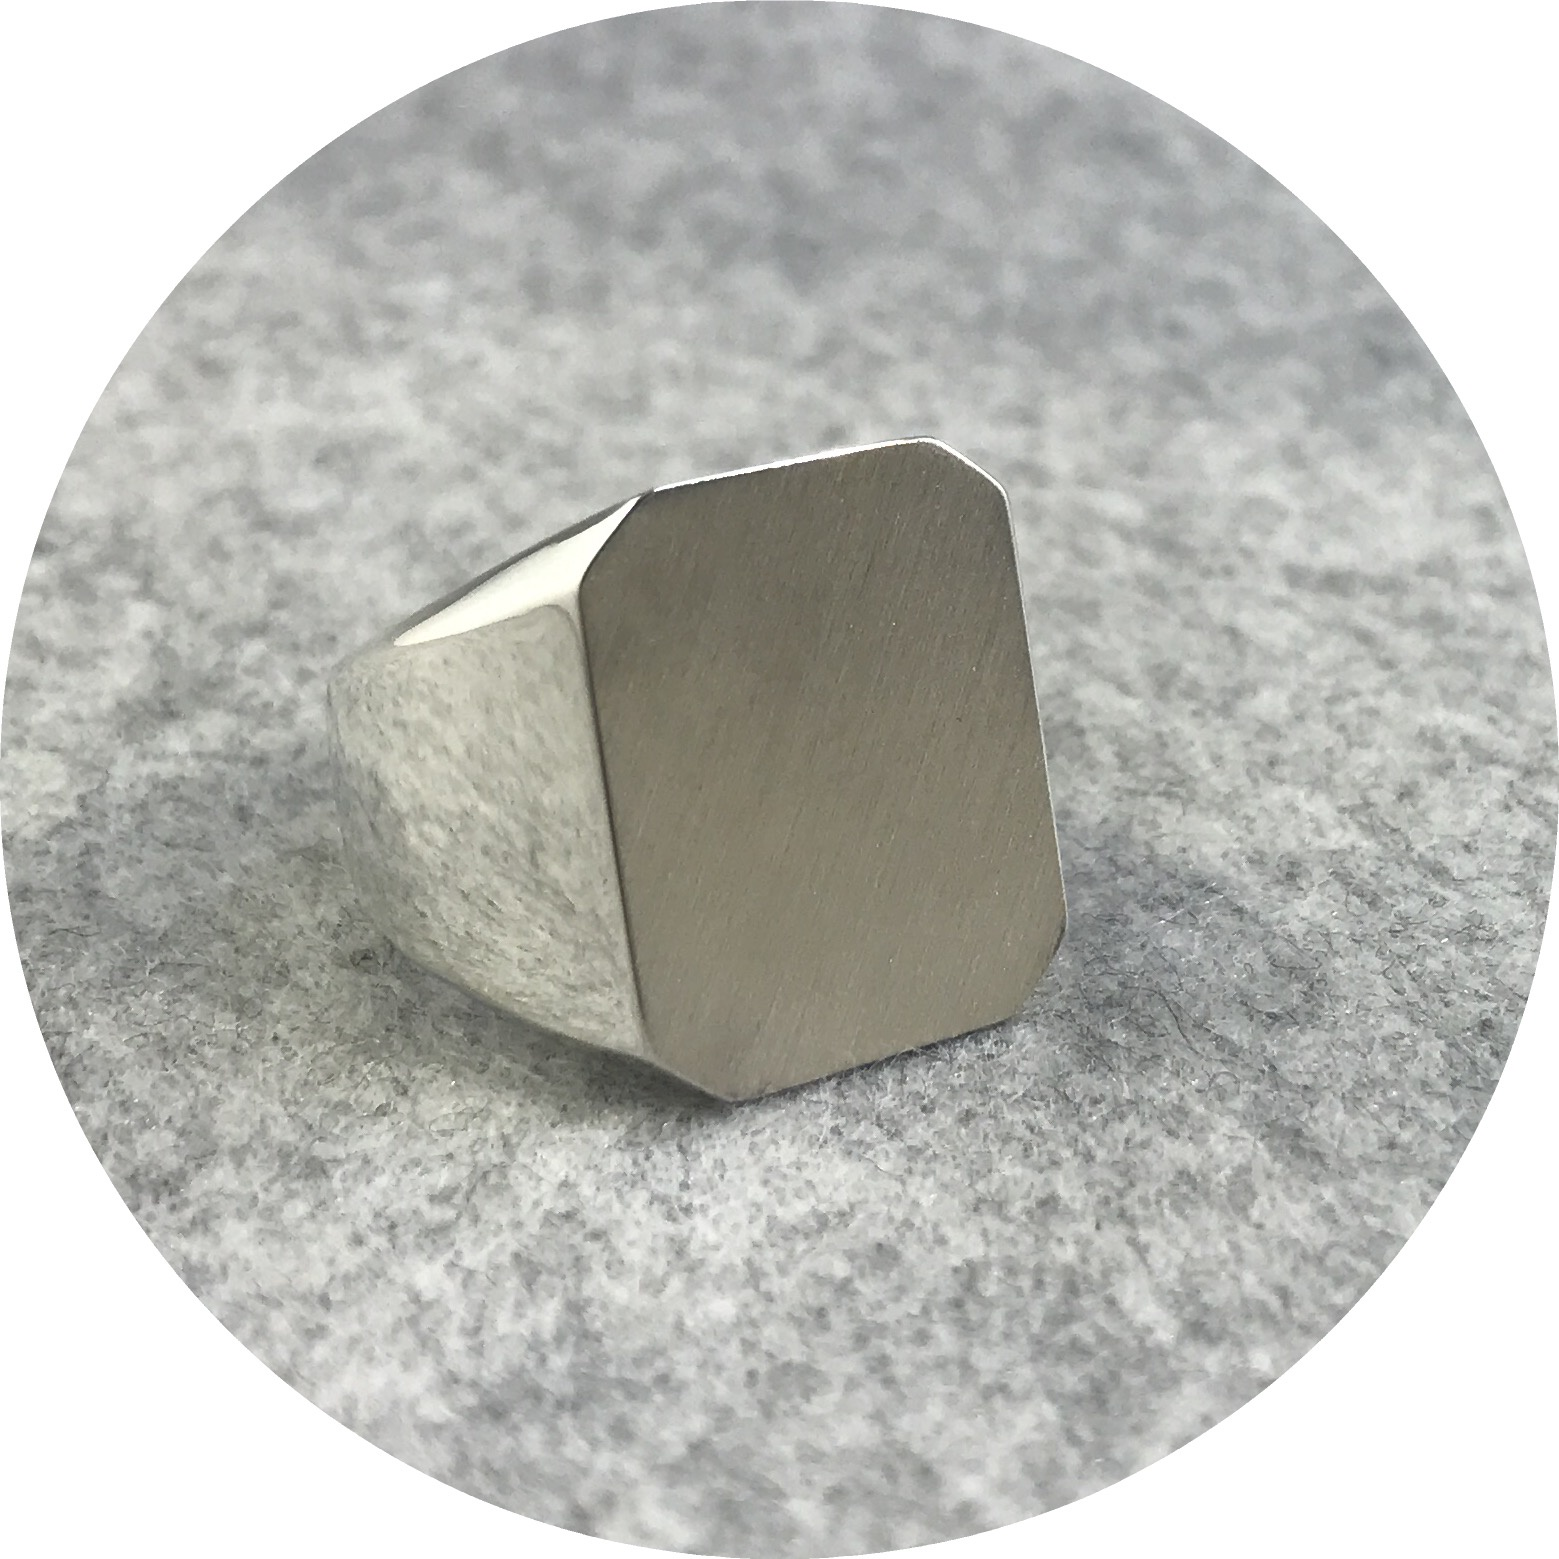 Fin Mahon- Octagonal flat top signet ring. Solid sterling silver. size Q.5